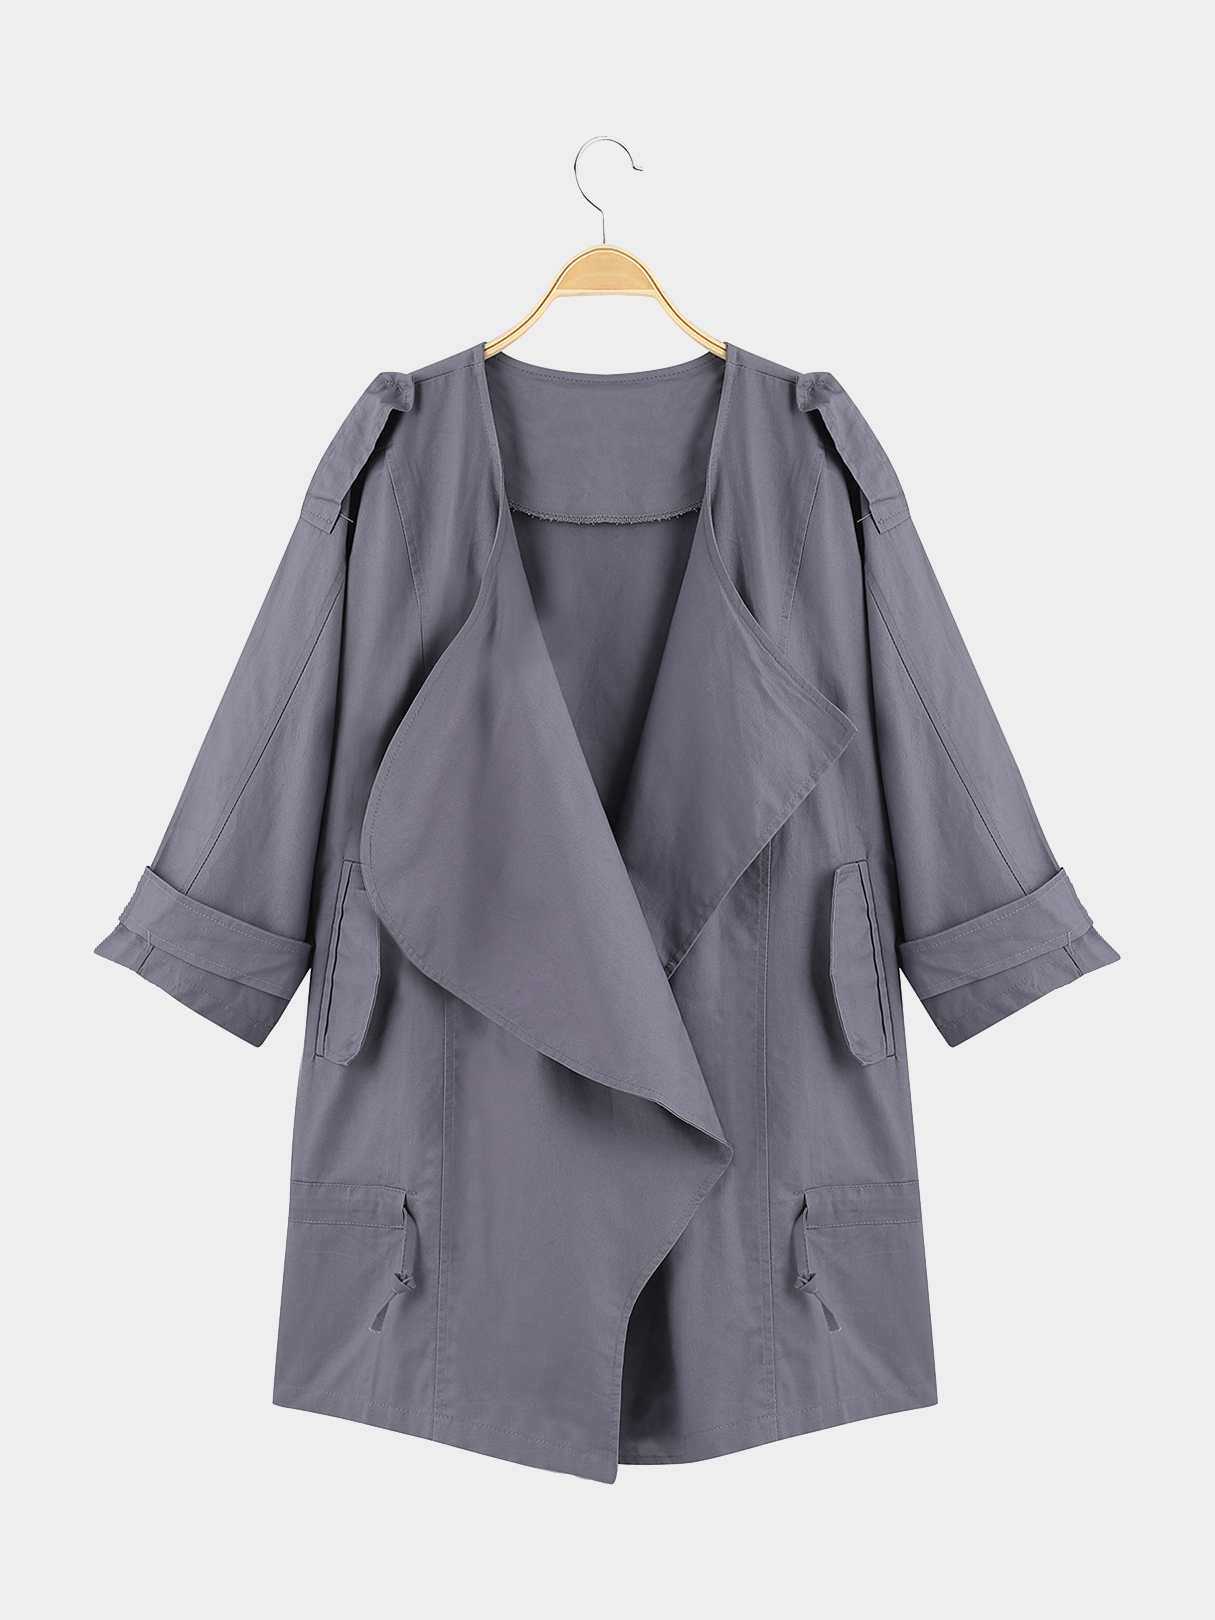 Classics Collection Solid Grey 3/4 Sleeve Waist Tie Trench Coat can you keep a secret